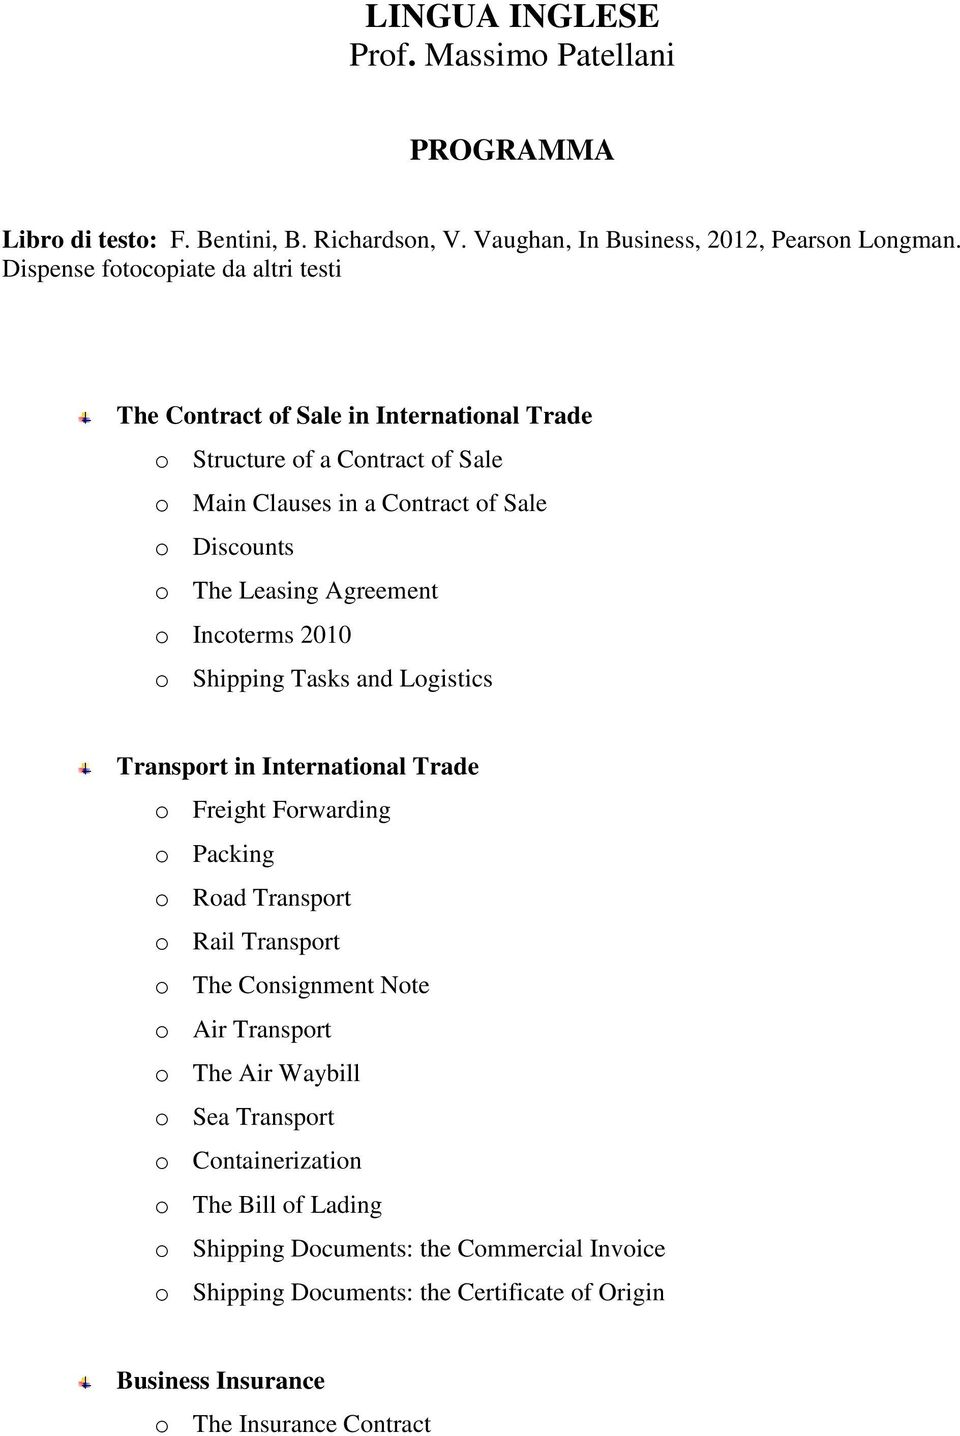 shipping documents in international trade pdf